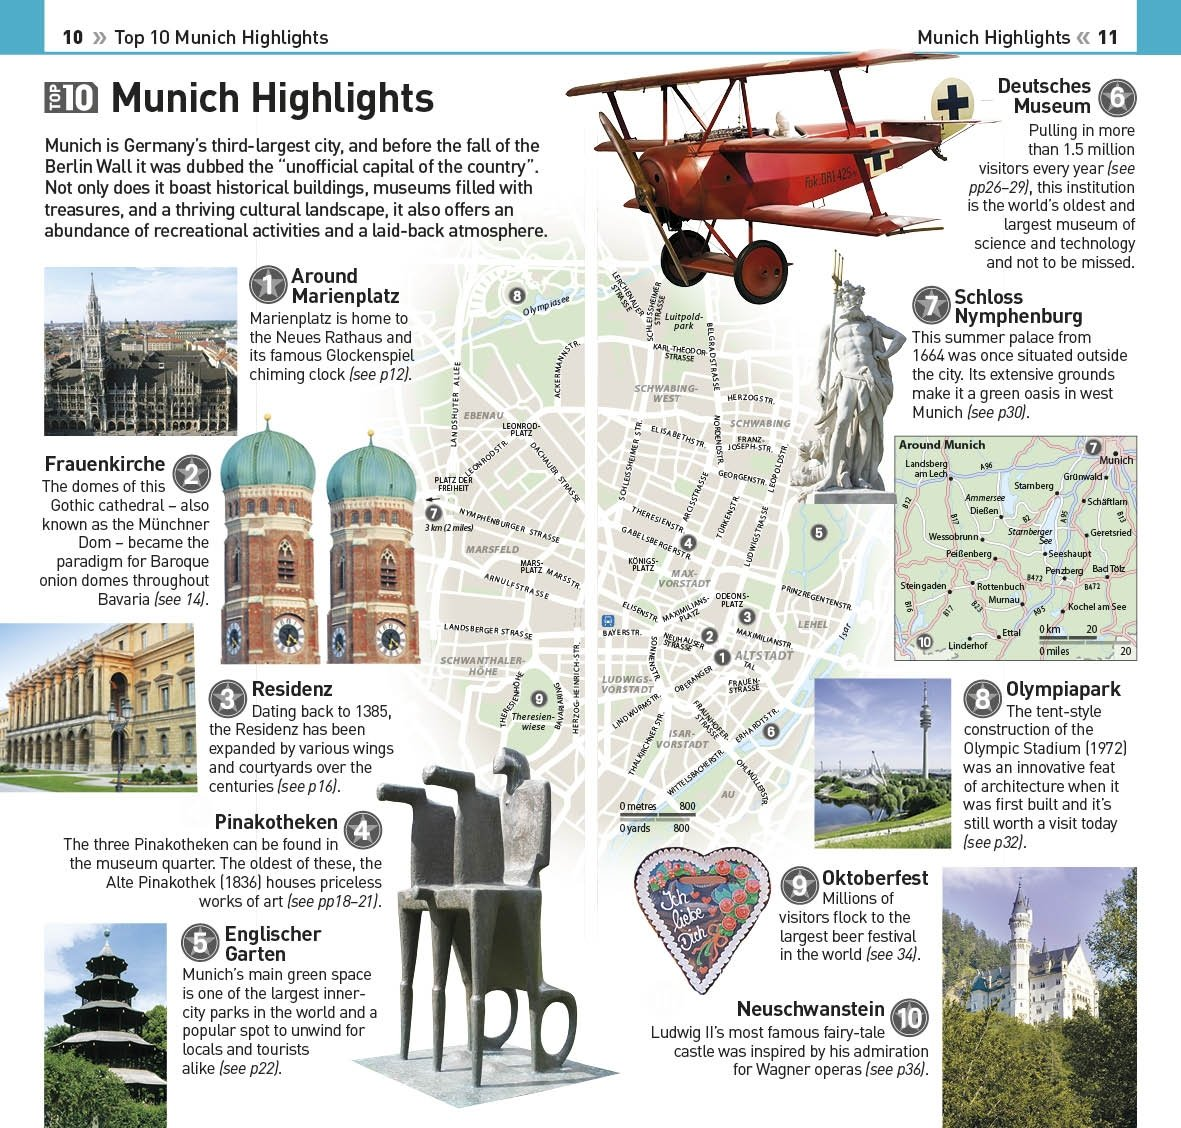 Great tour guide review of discover munich with lenny's bike.